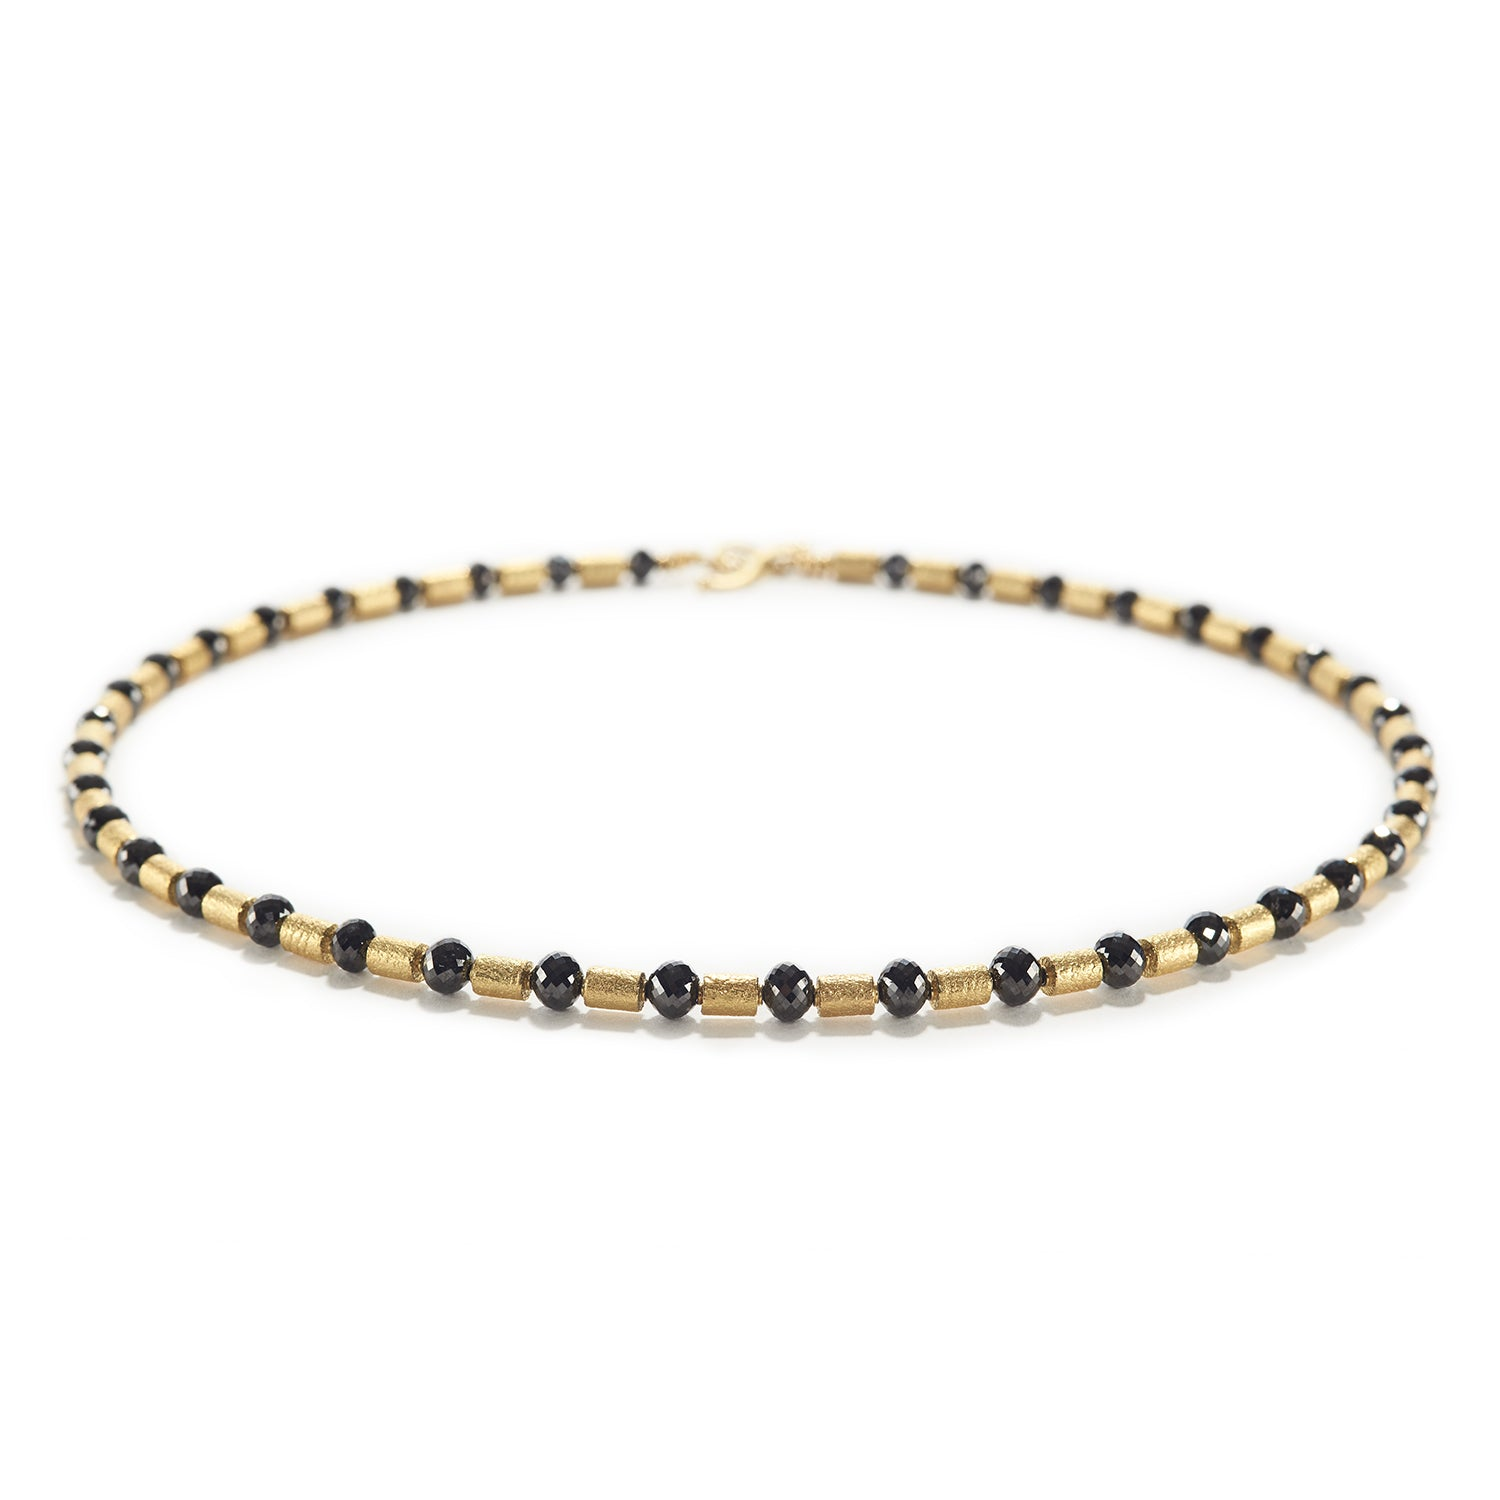 Black Diamond with Gold Barrels Necklace